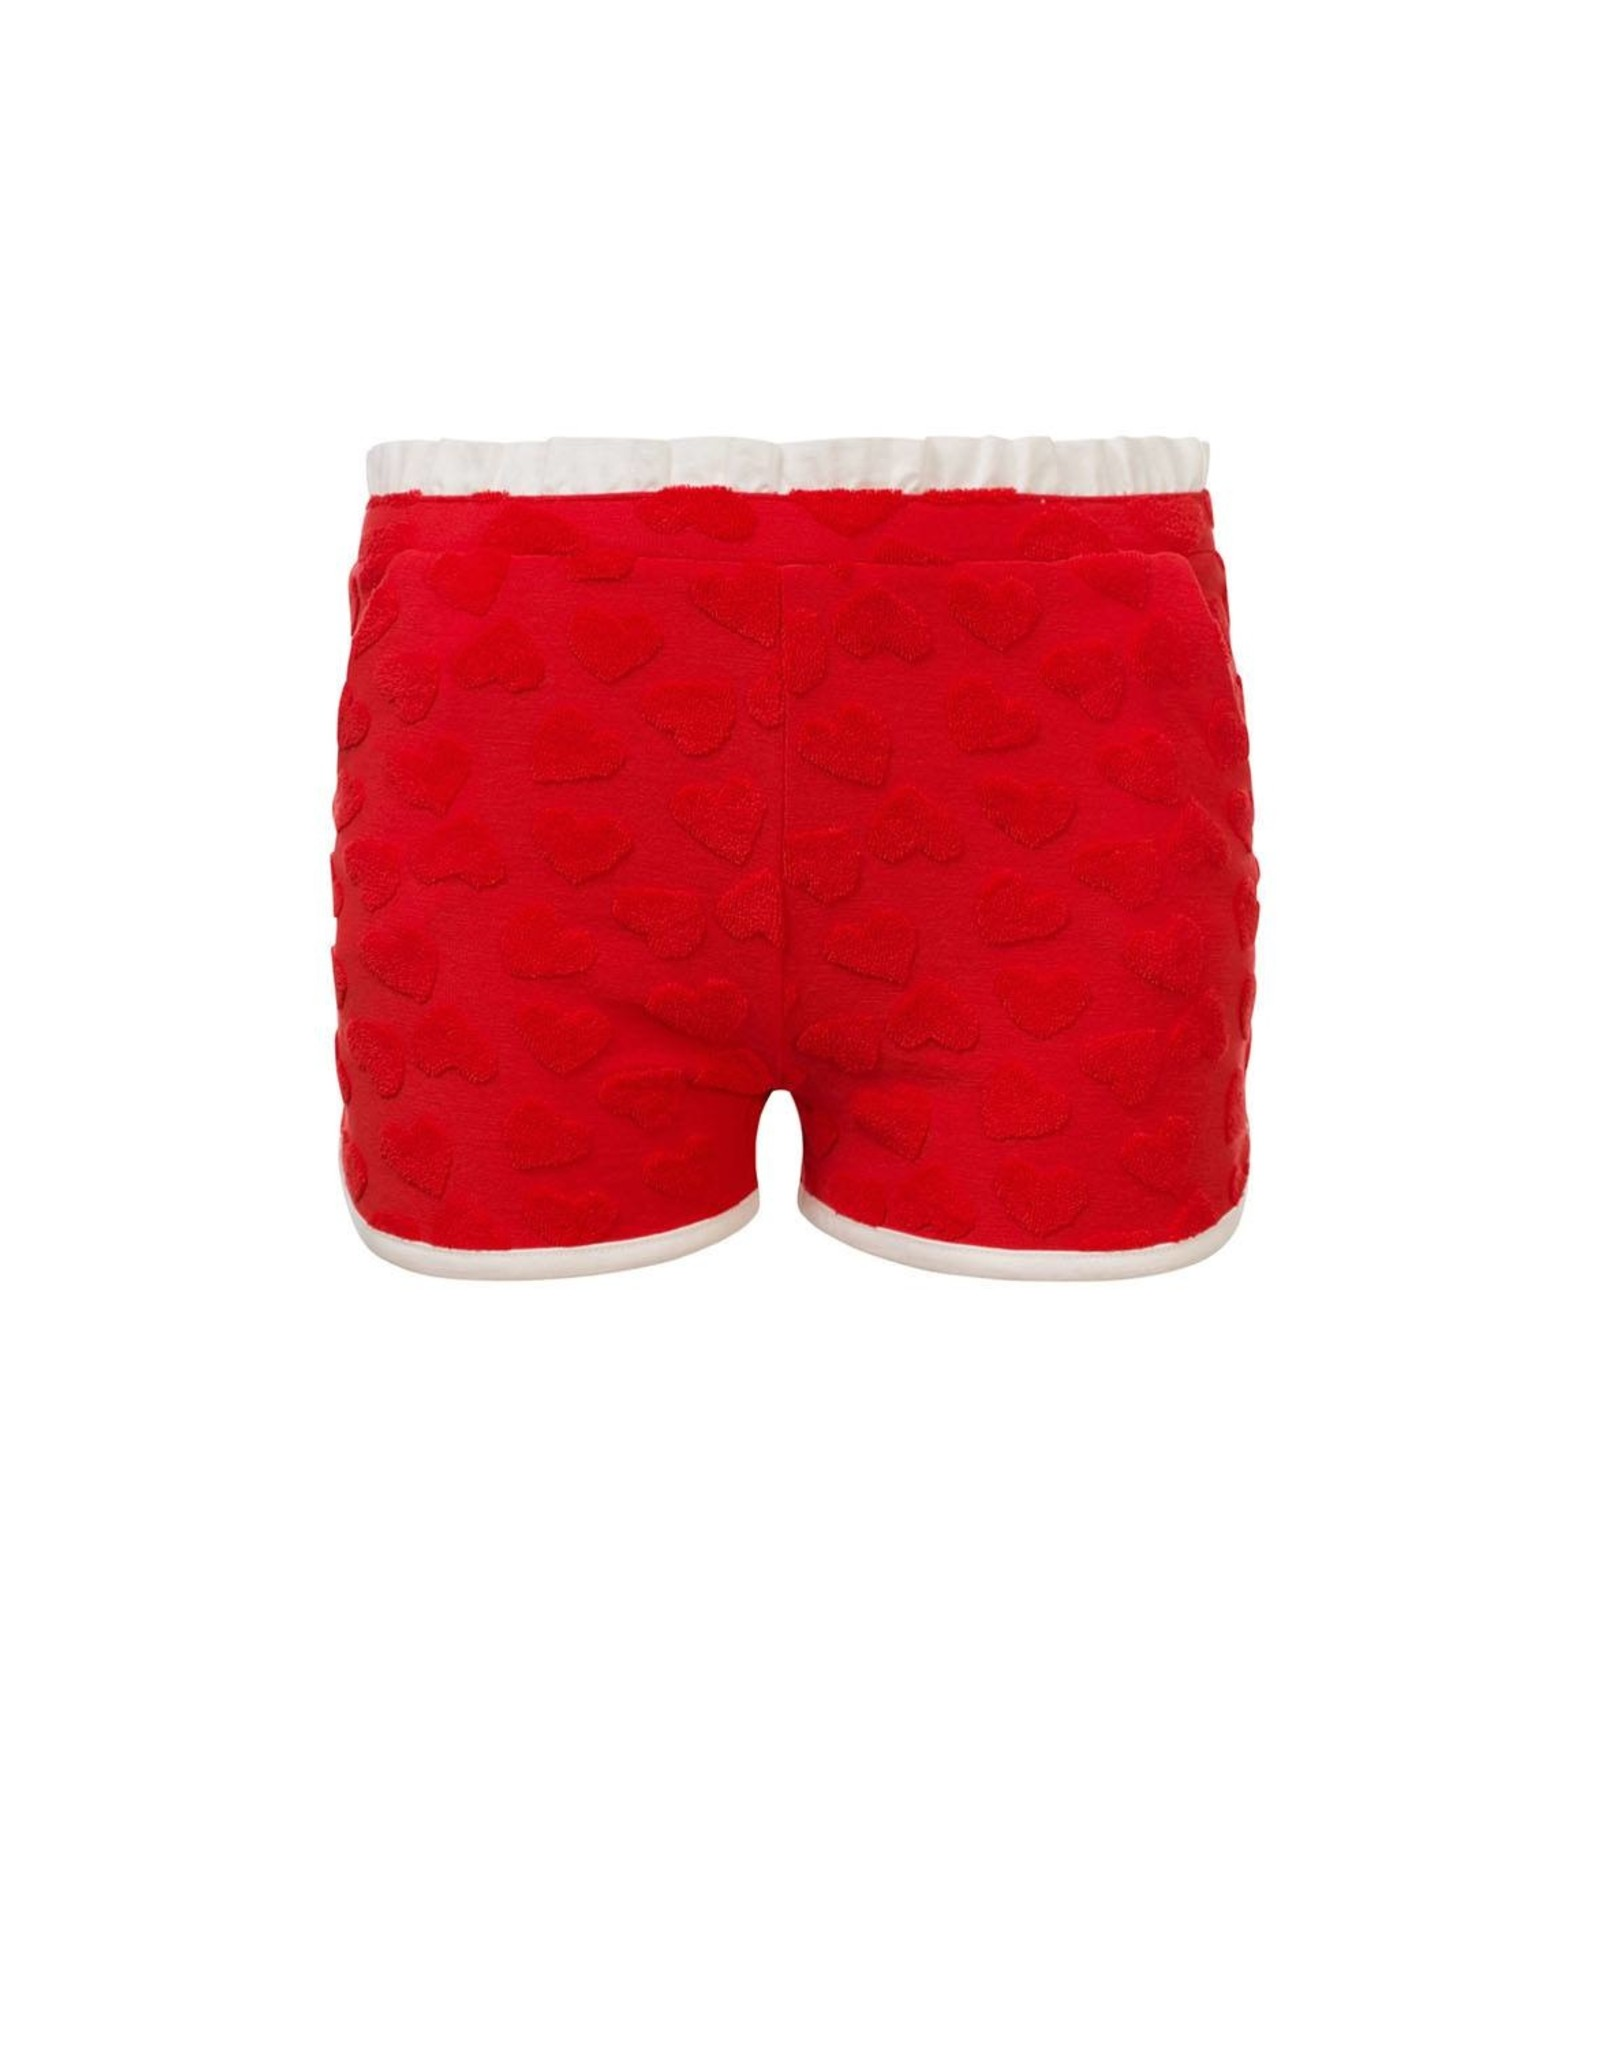 LOOXS Little Little shorts RED APPLE